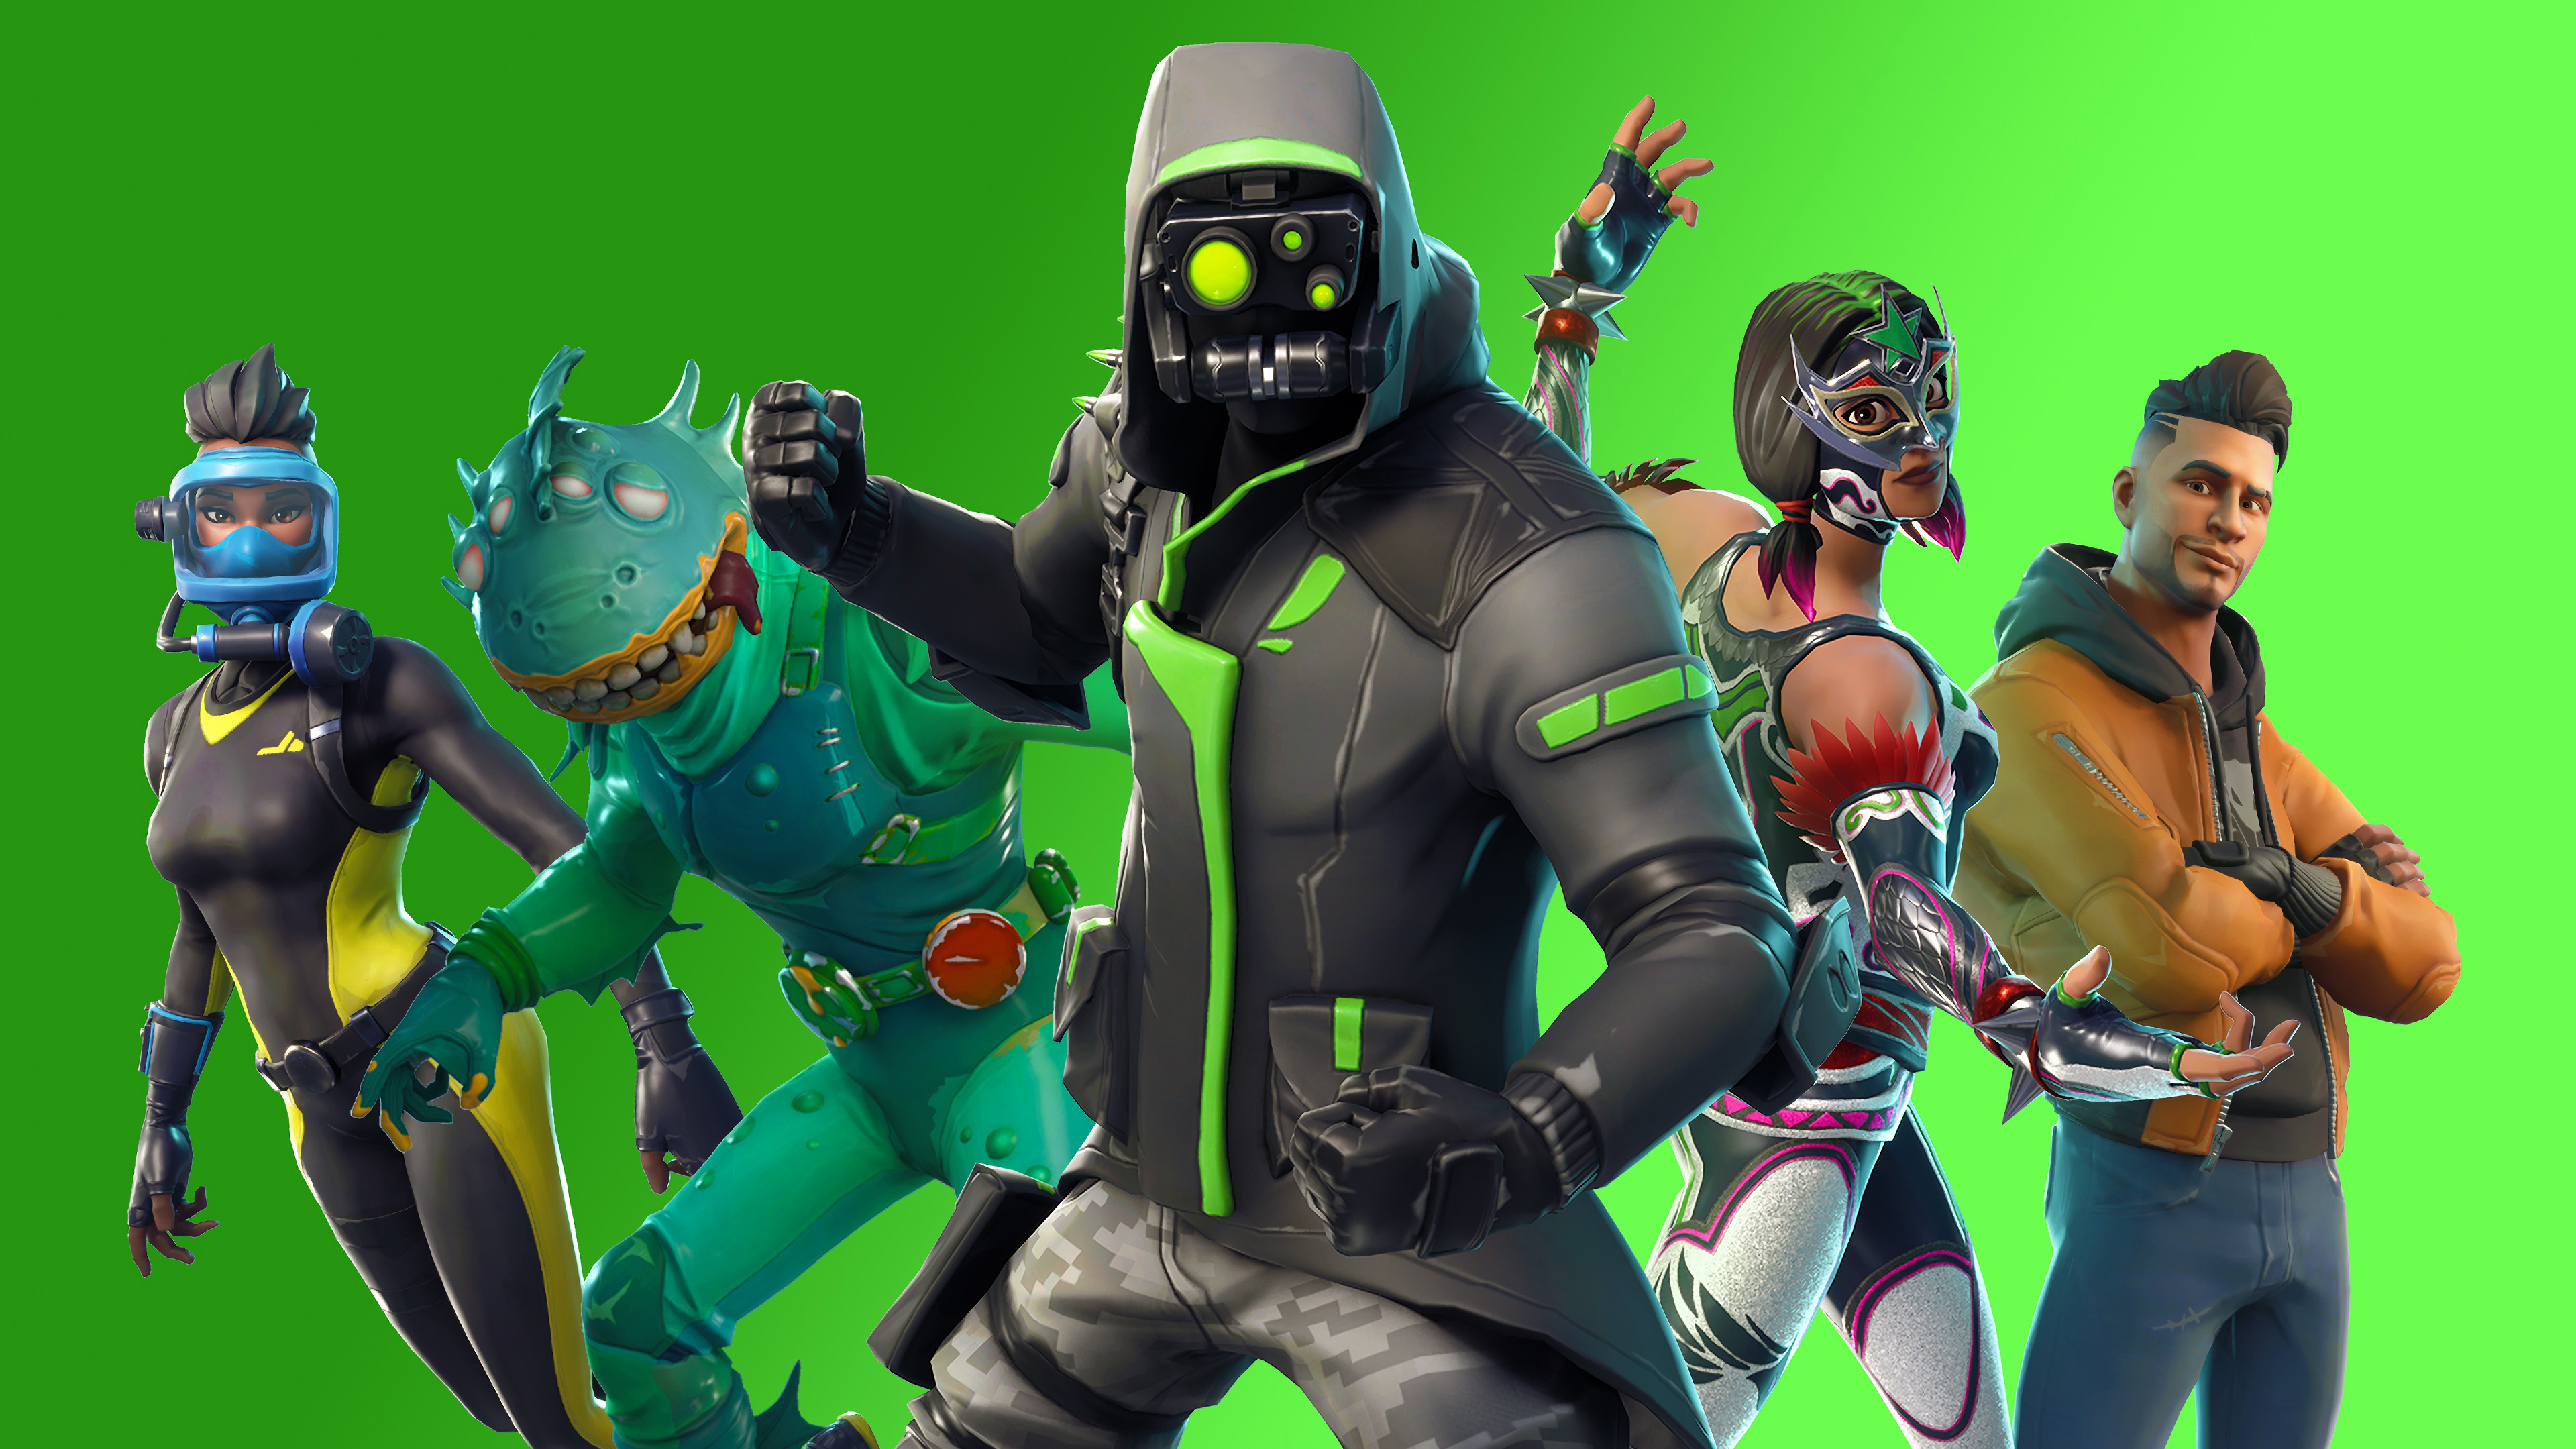 Fortnite Battle Royale Season 6 Hd Games 4k Wallpapers Images Backgrounds Photos And Pictures